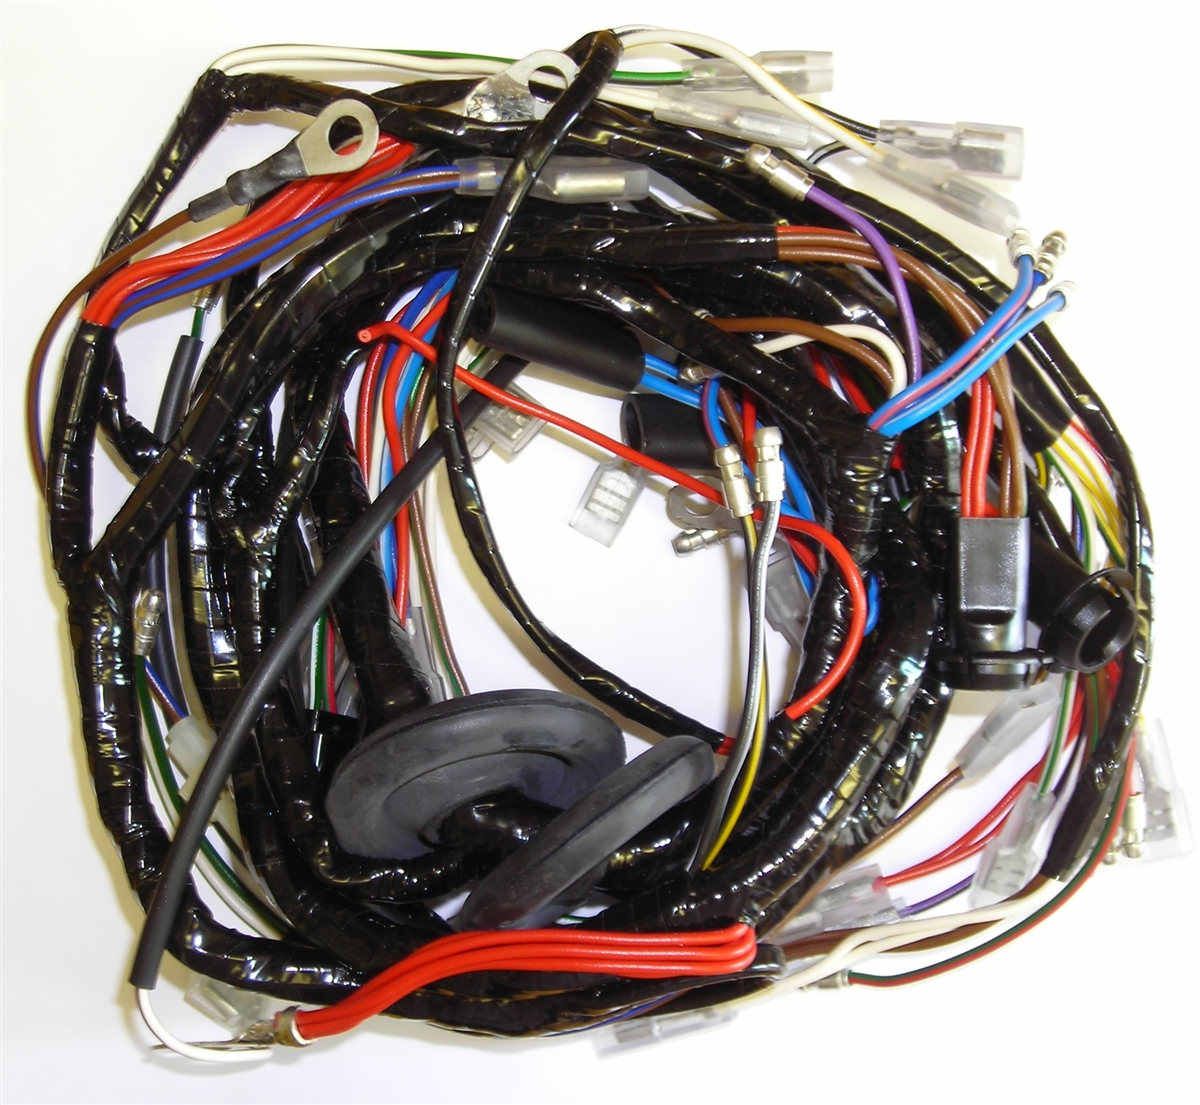 MC71PP 2?1374666211 motorcycle wiring harness motorcycle wiring harness at mifinder.co